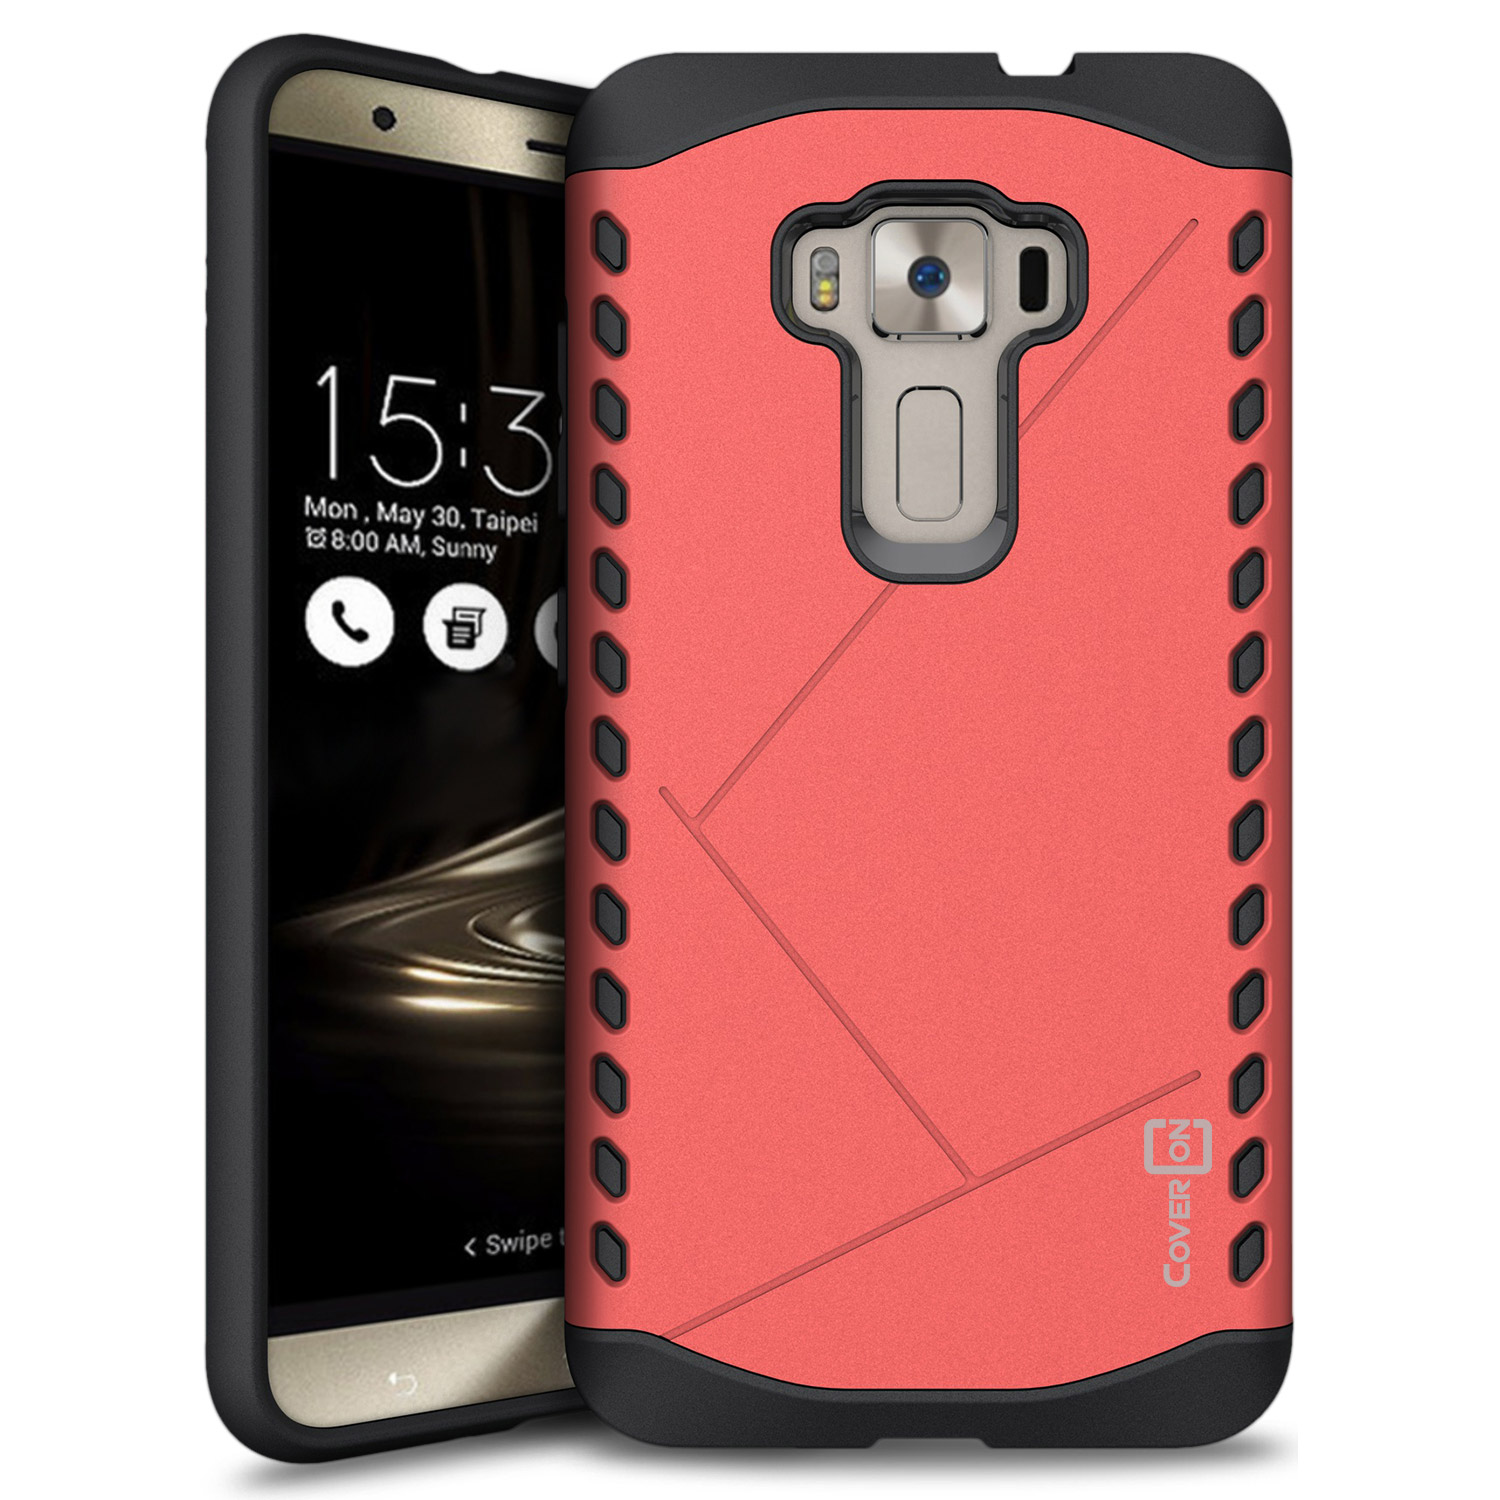 For Asus Zenfone 3 55 ZE552KL Case Armor Hard Modern